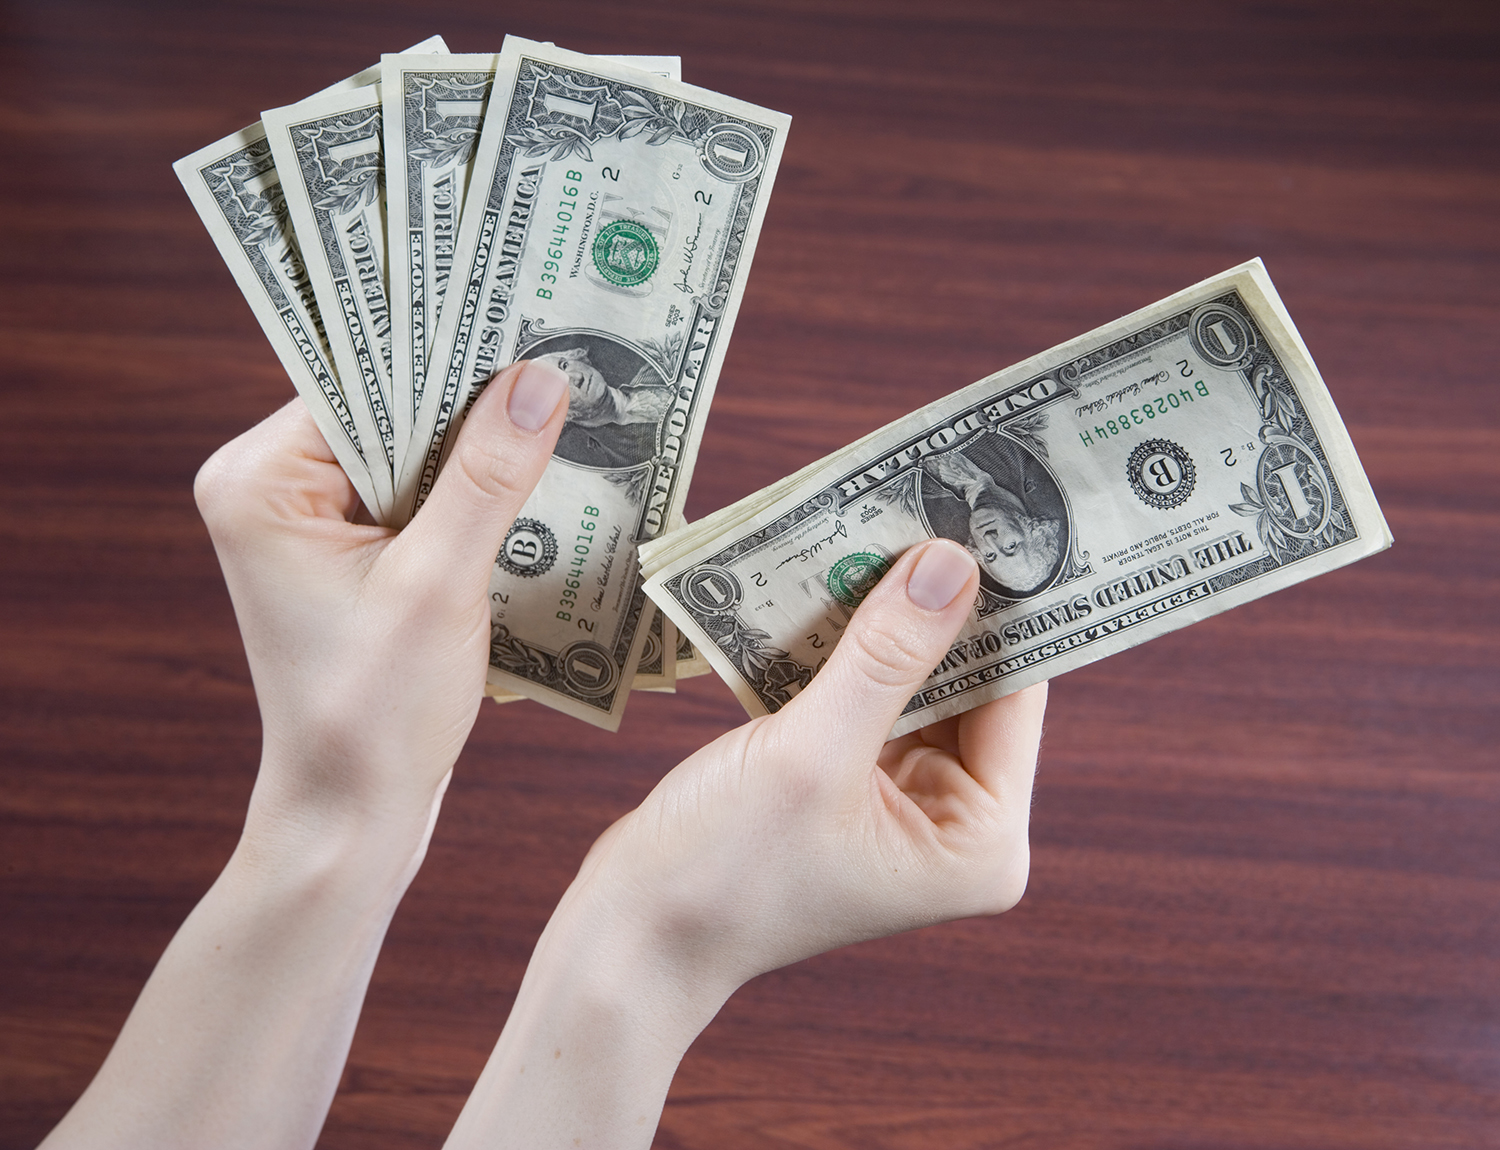 Woman counting US banknotes, close-up of hands